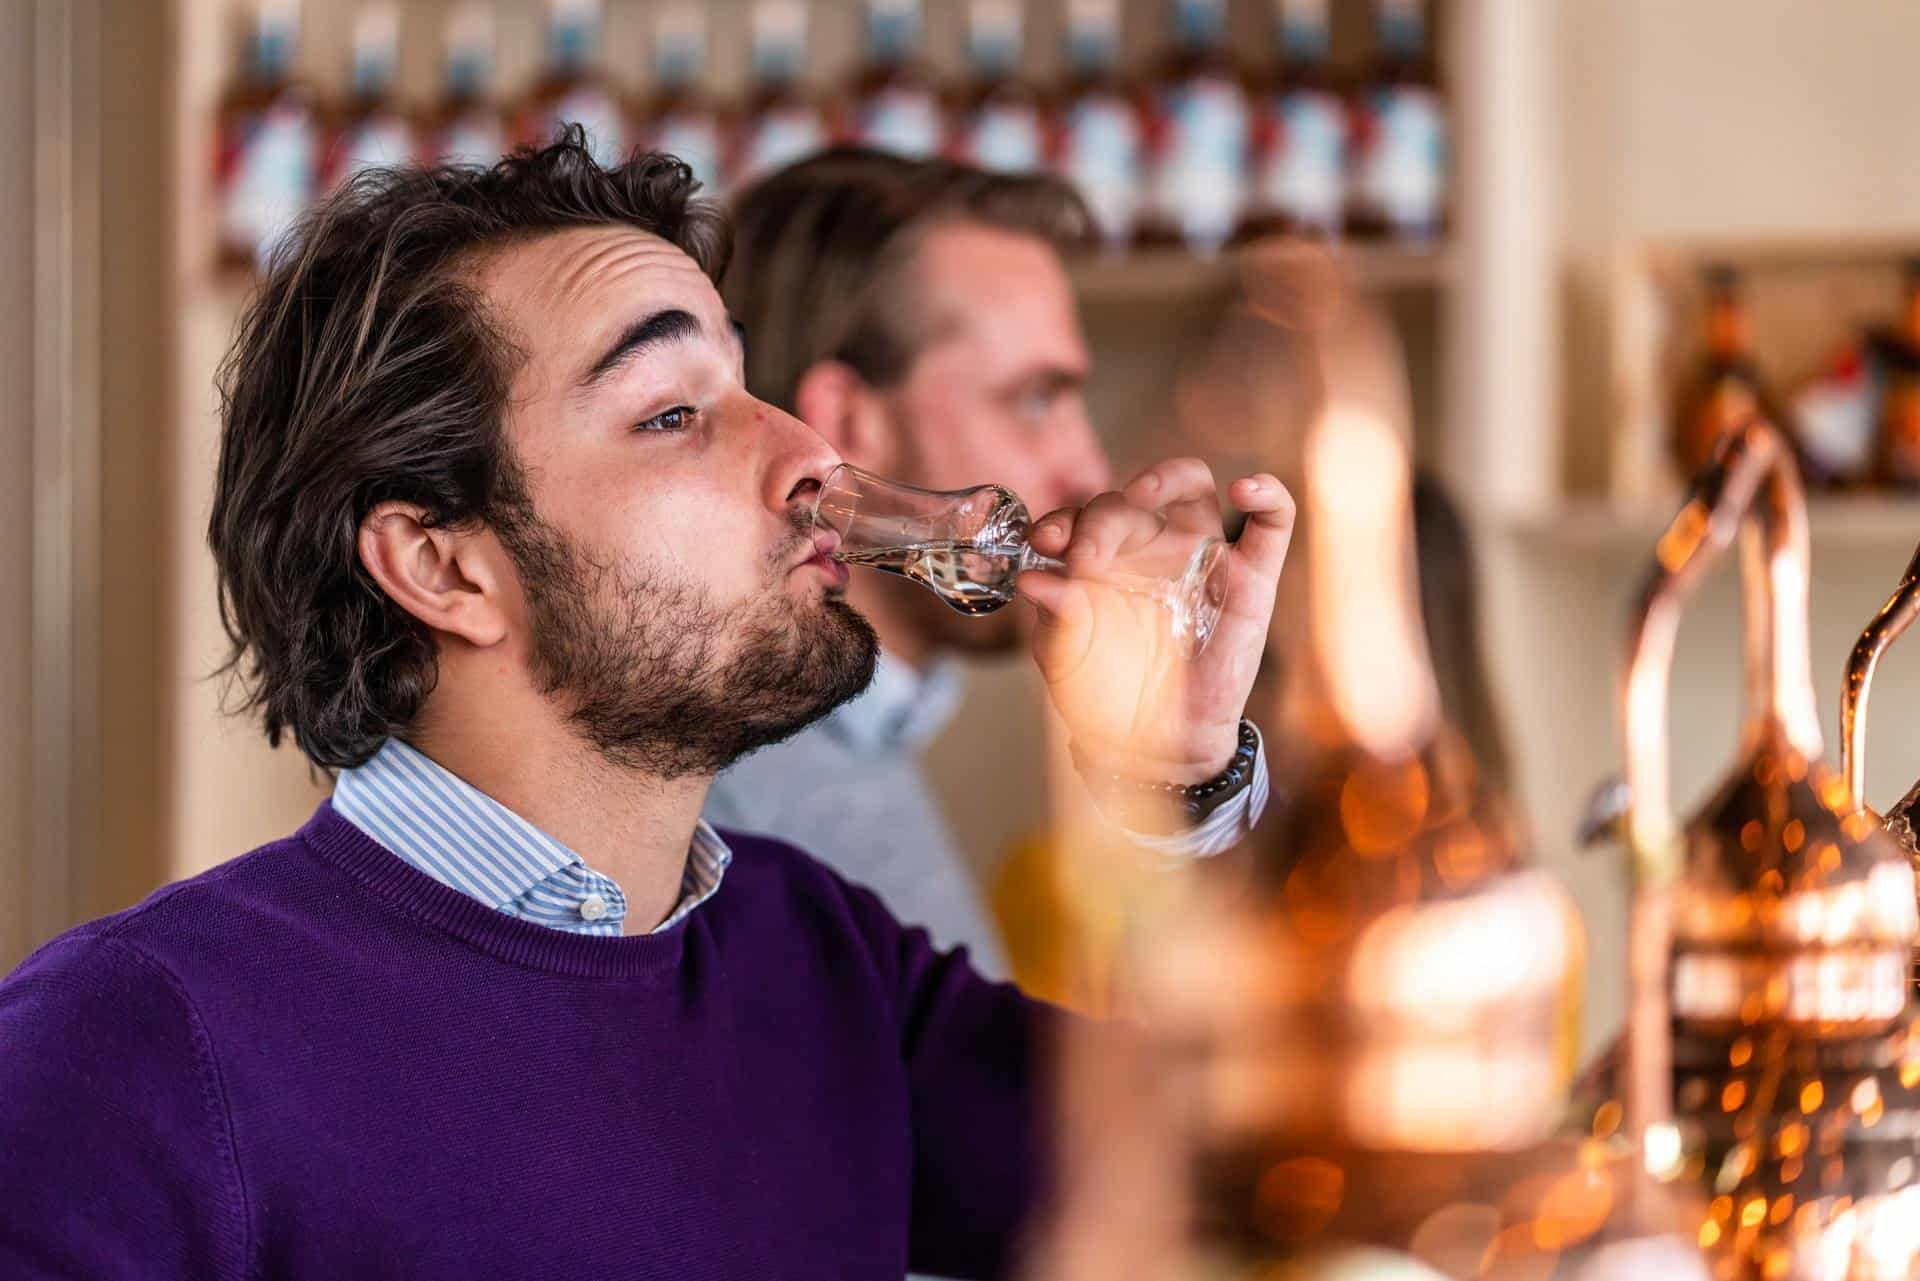 Tasting rum during the distilling class in the spirited union distillery in amsterdam